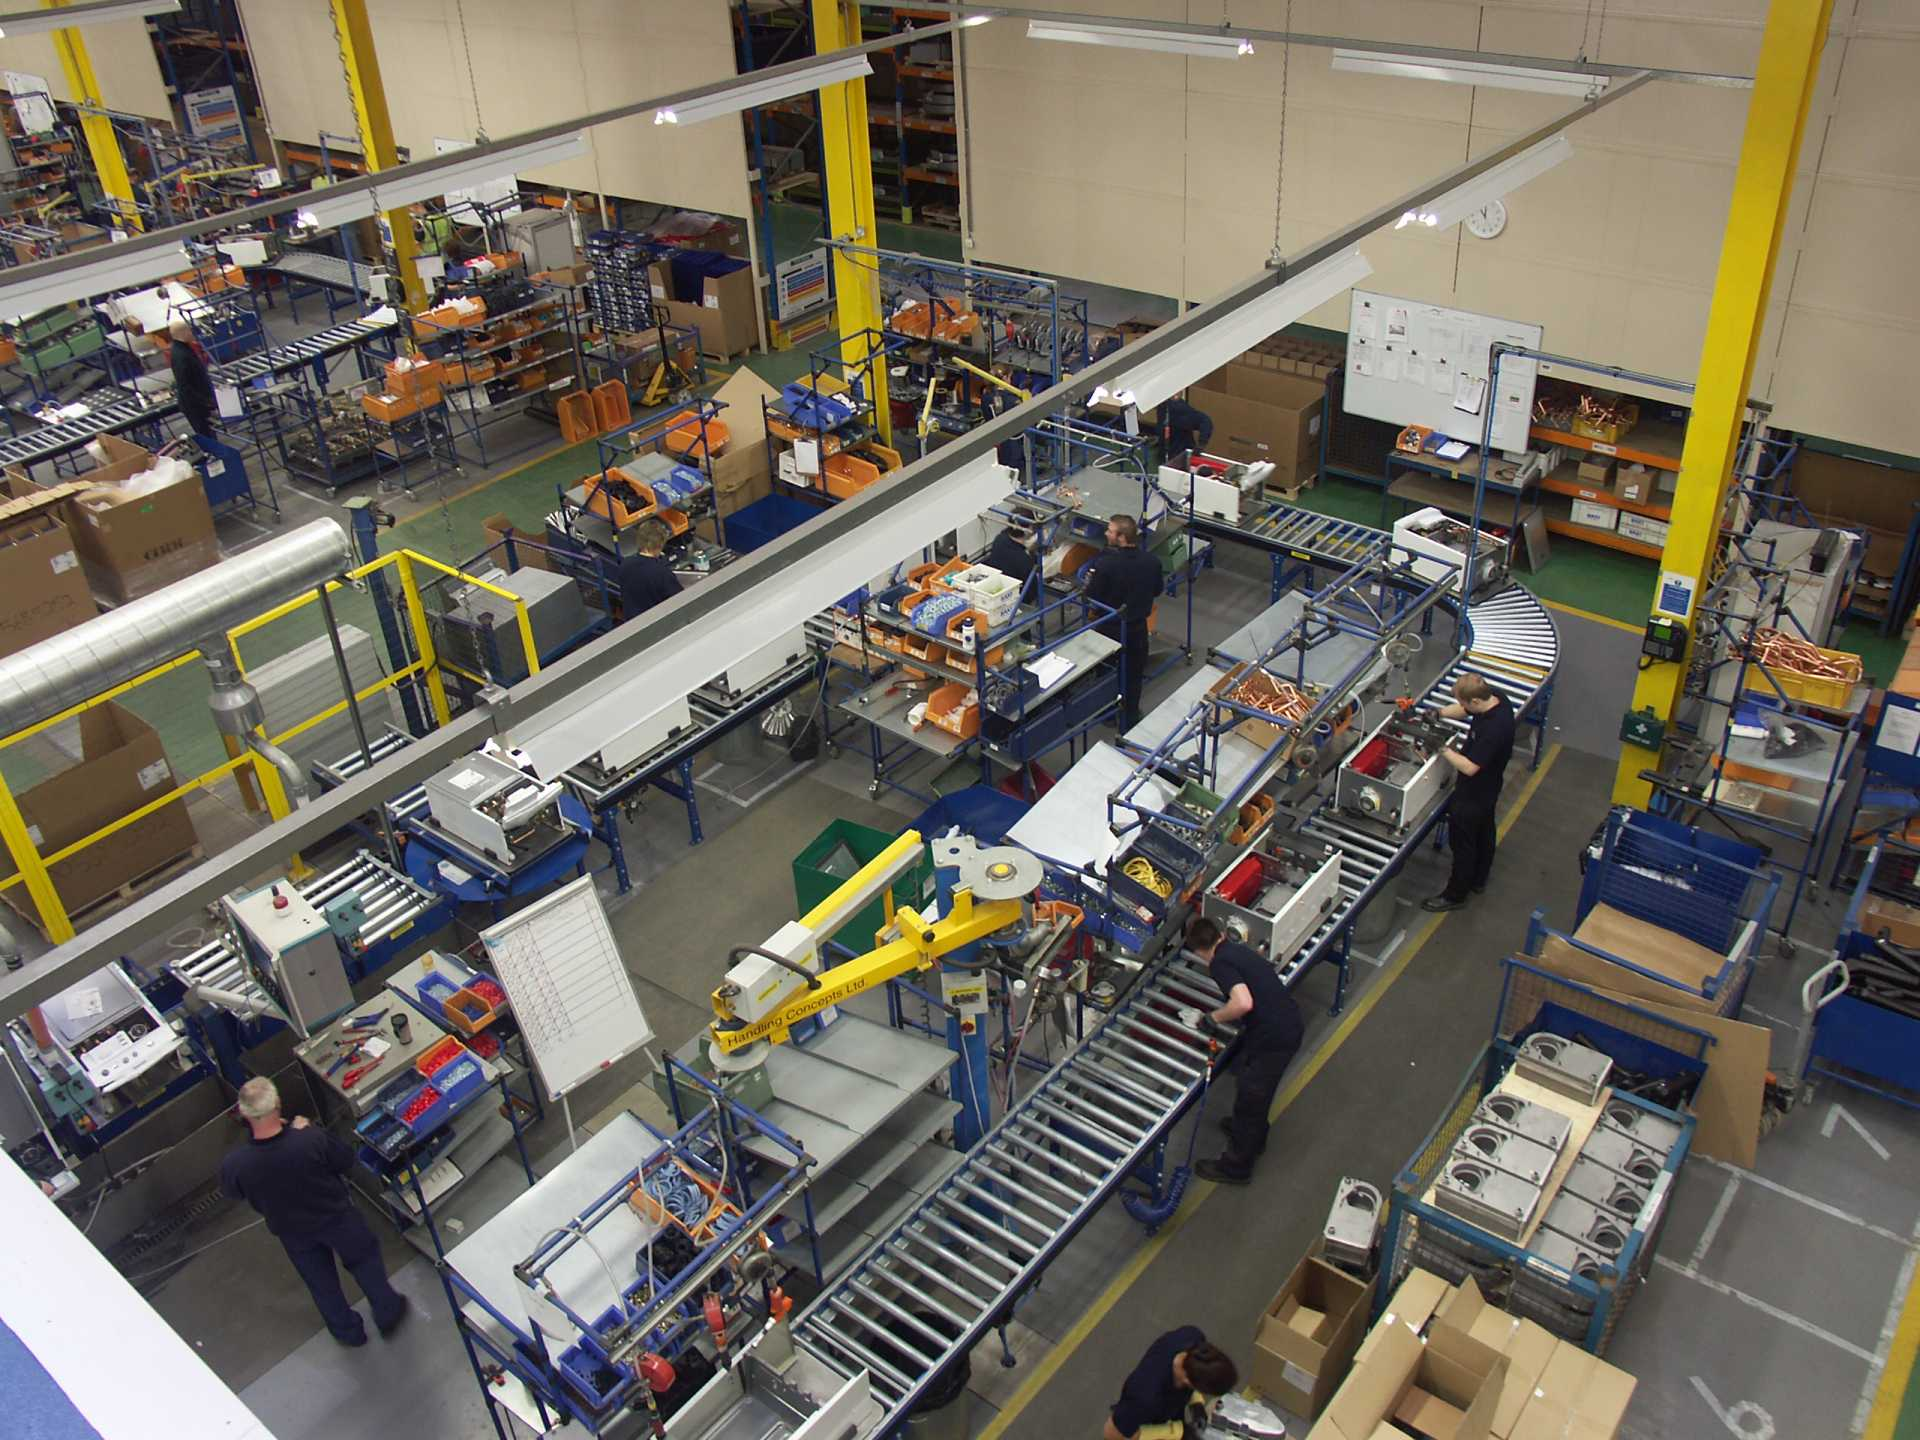 (Picture) Baxi's Preston factory - Baxi Heating are Britain's largest producer of electric water heaters and water cylinders. They are moving production from their Norwich site to Preston.